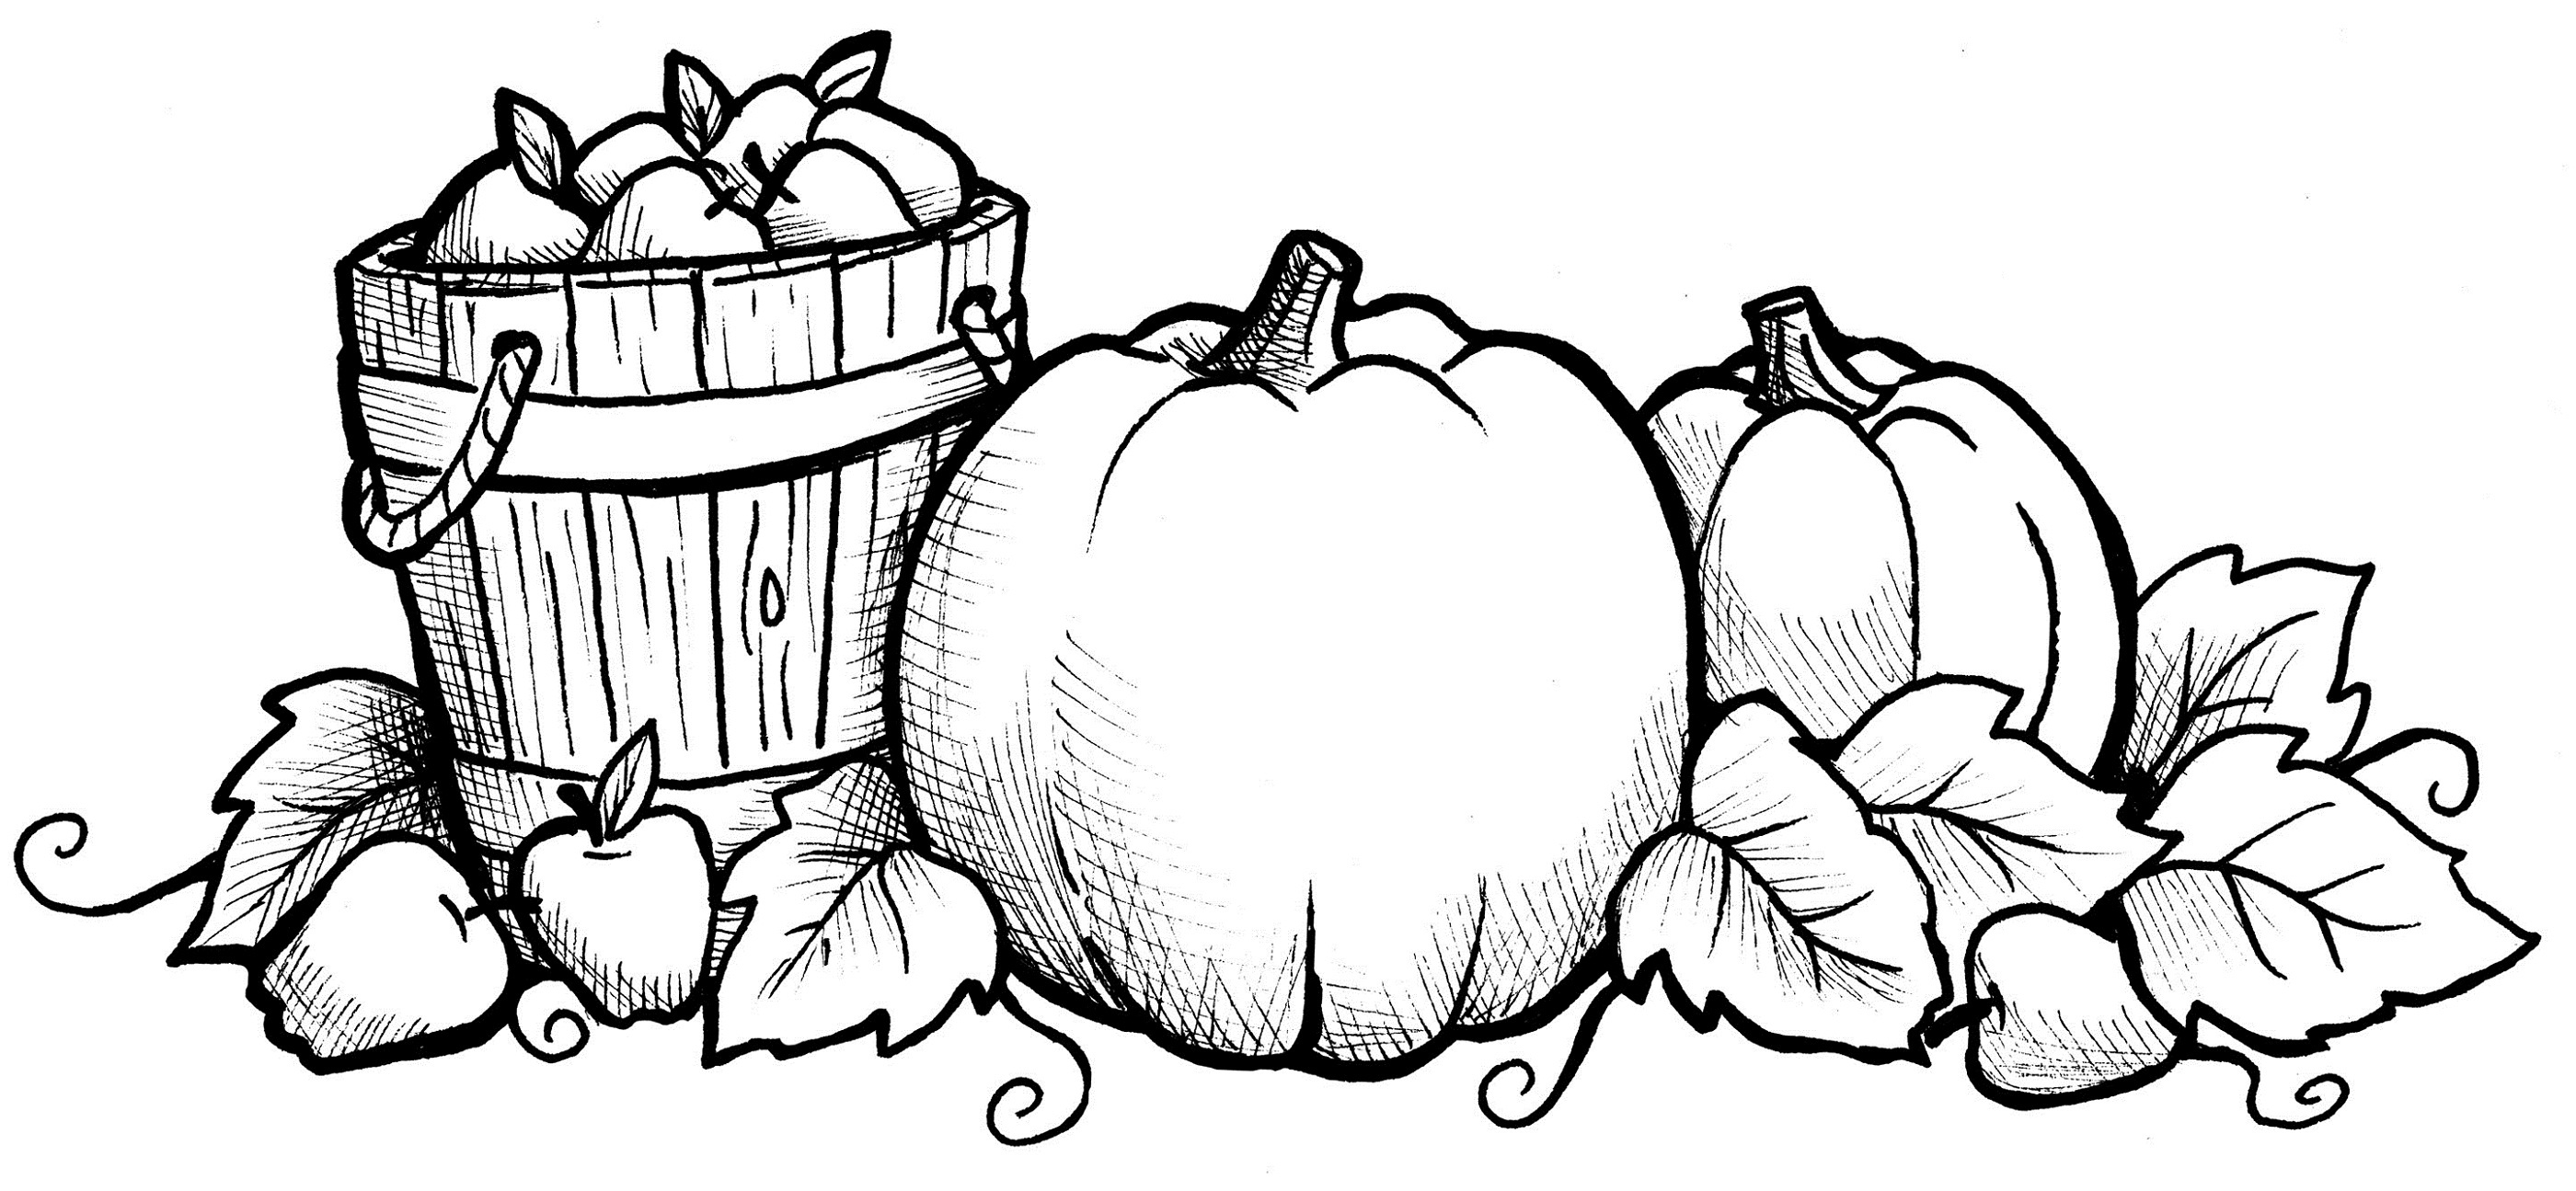 Harvest Coloring Pages - Best Coloring Pages For Kids - Free Printable Fall Harvest Coloring Pages